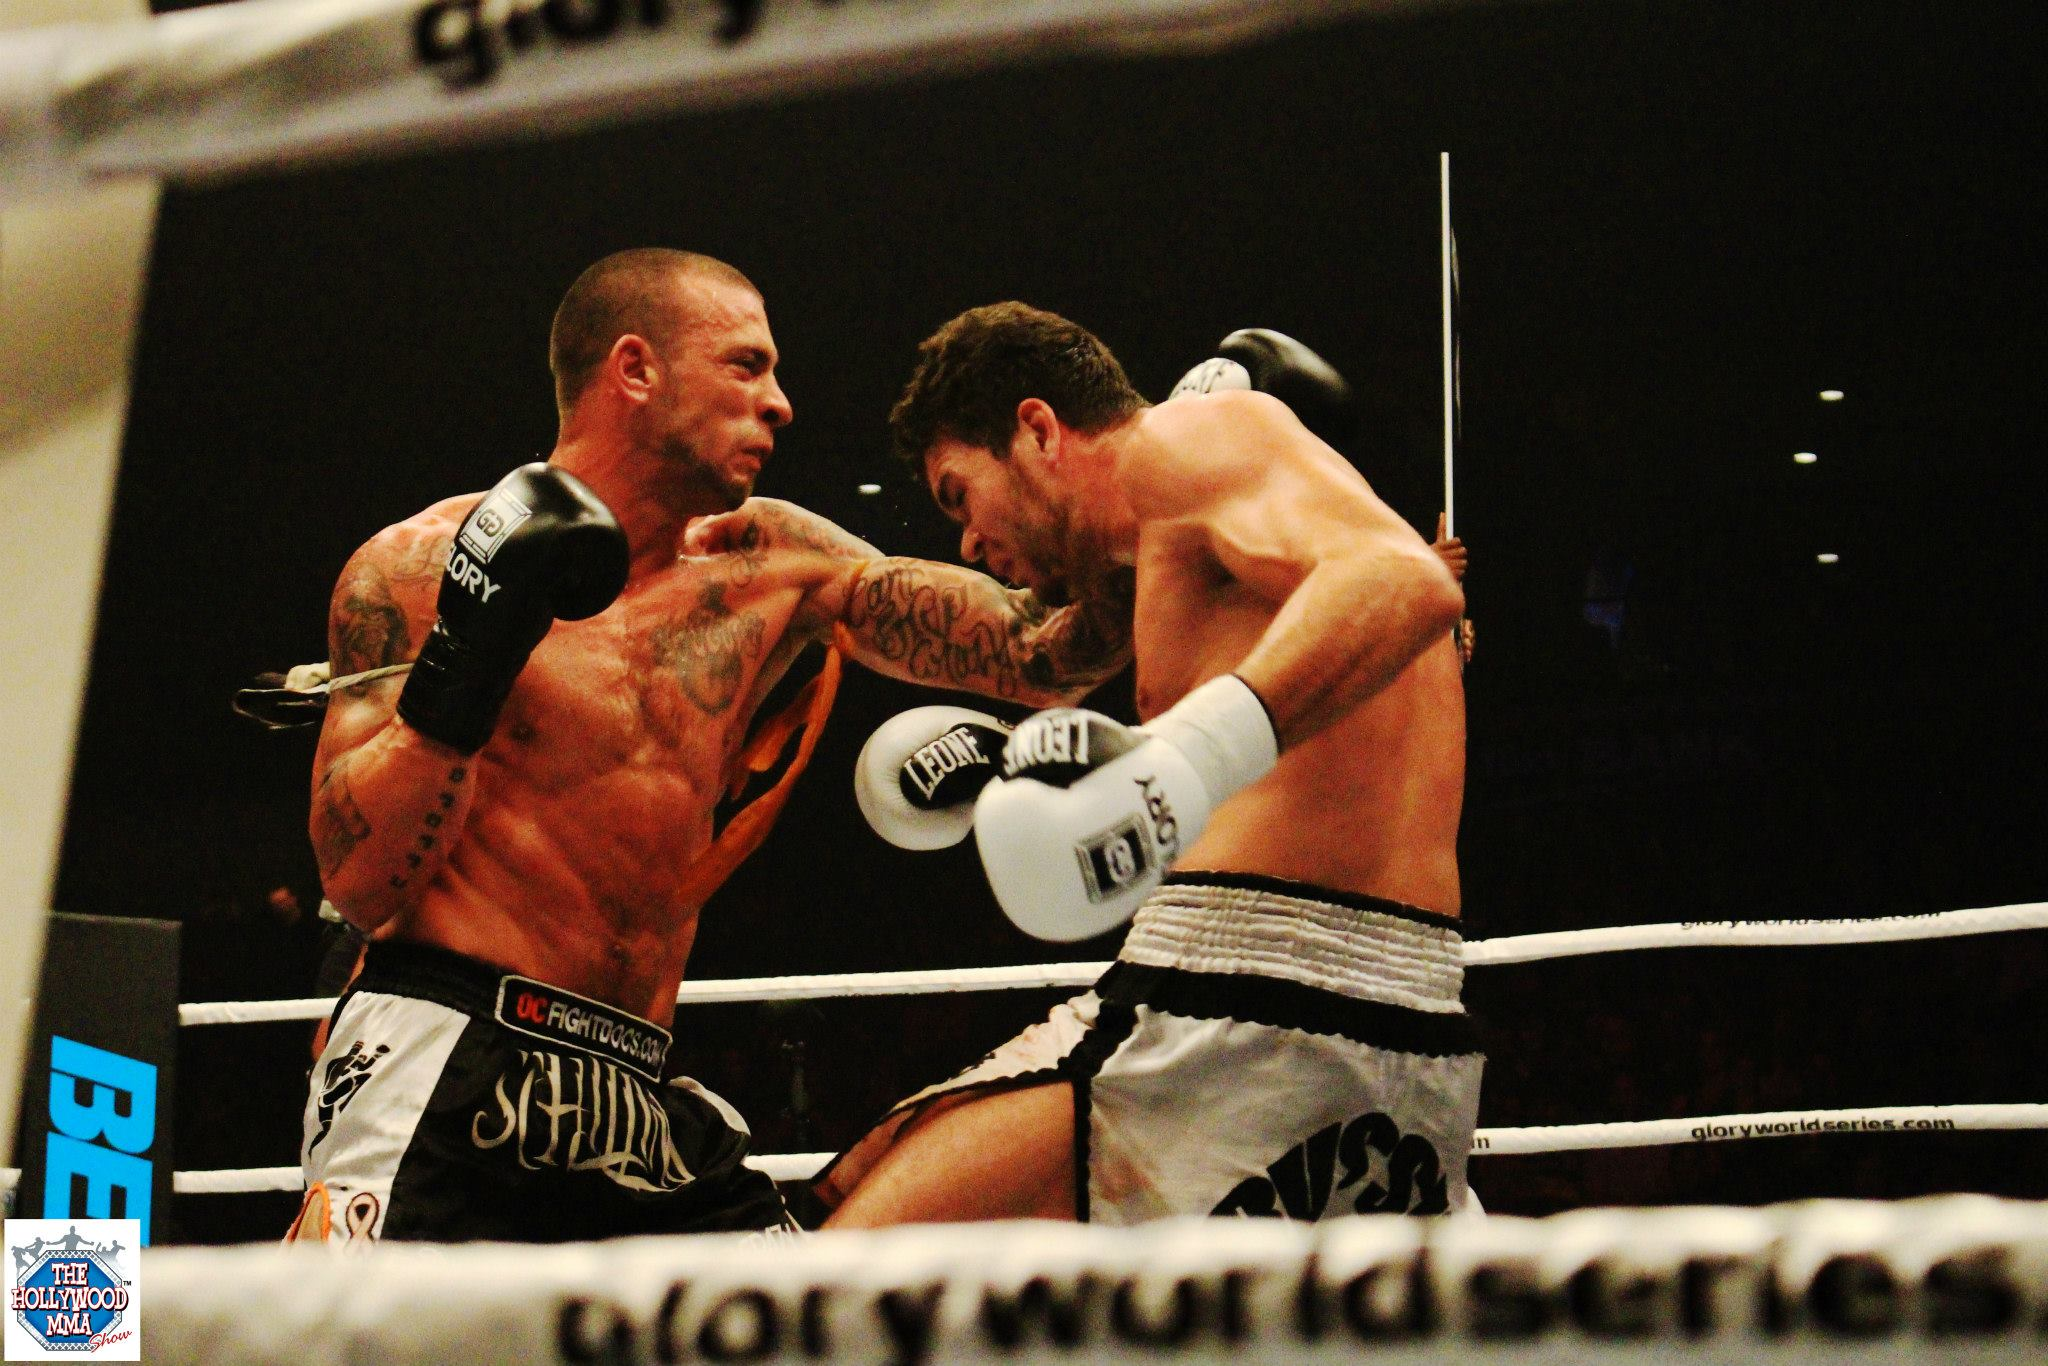 Glory10_TheHollywoodMMAShow_Photography_by_RayRoman.jpg